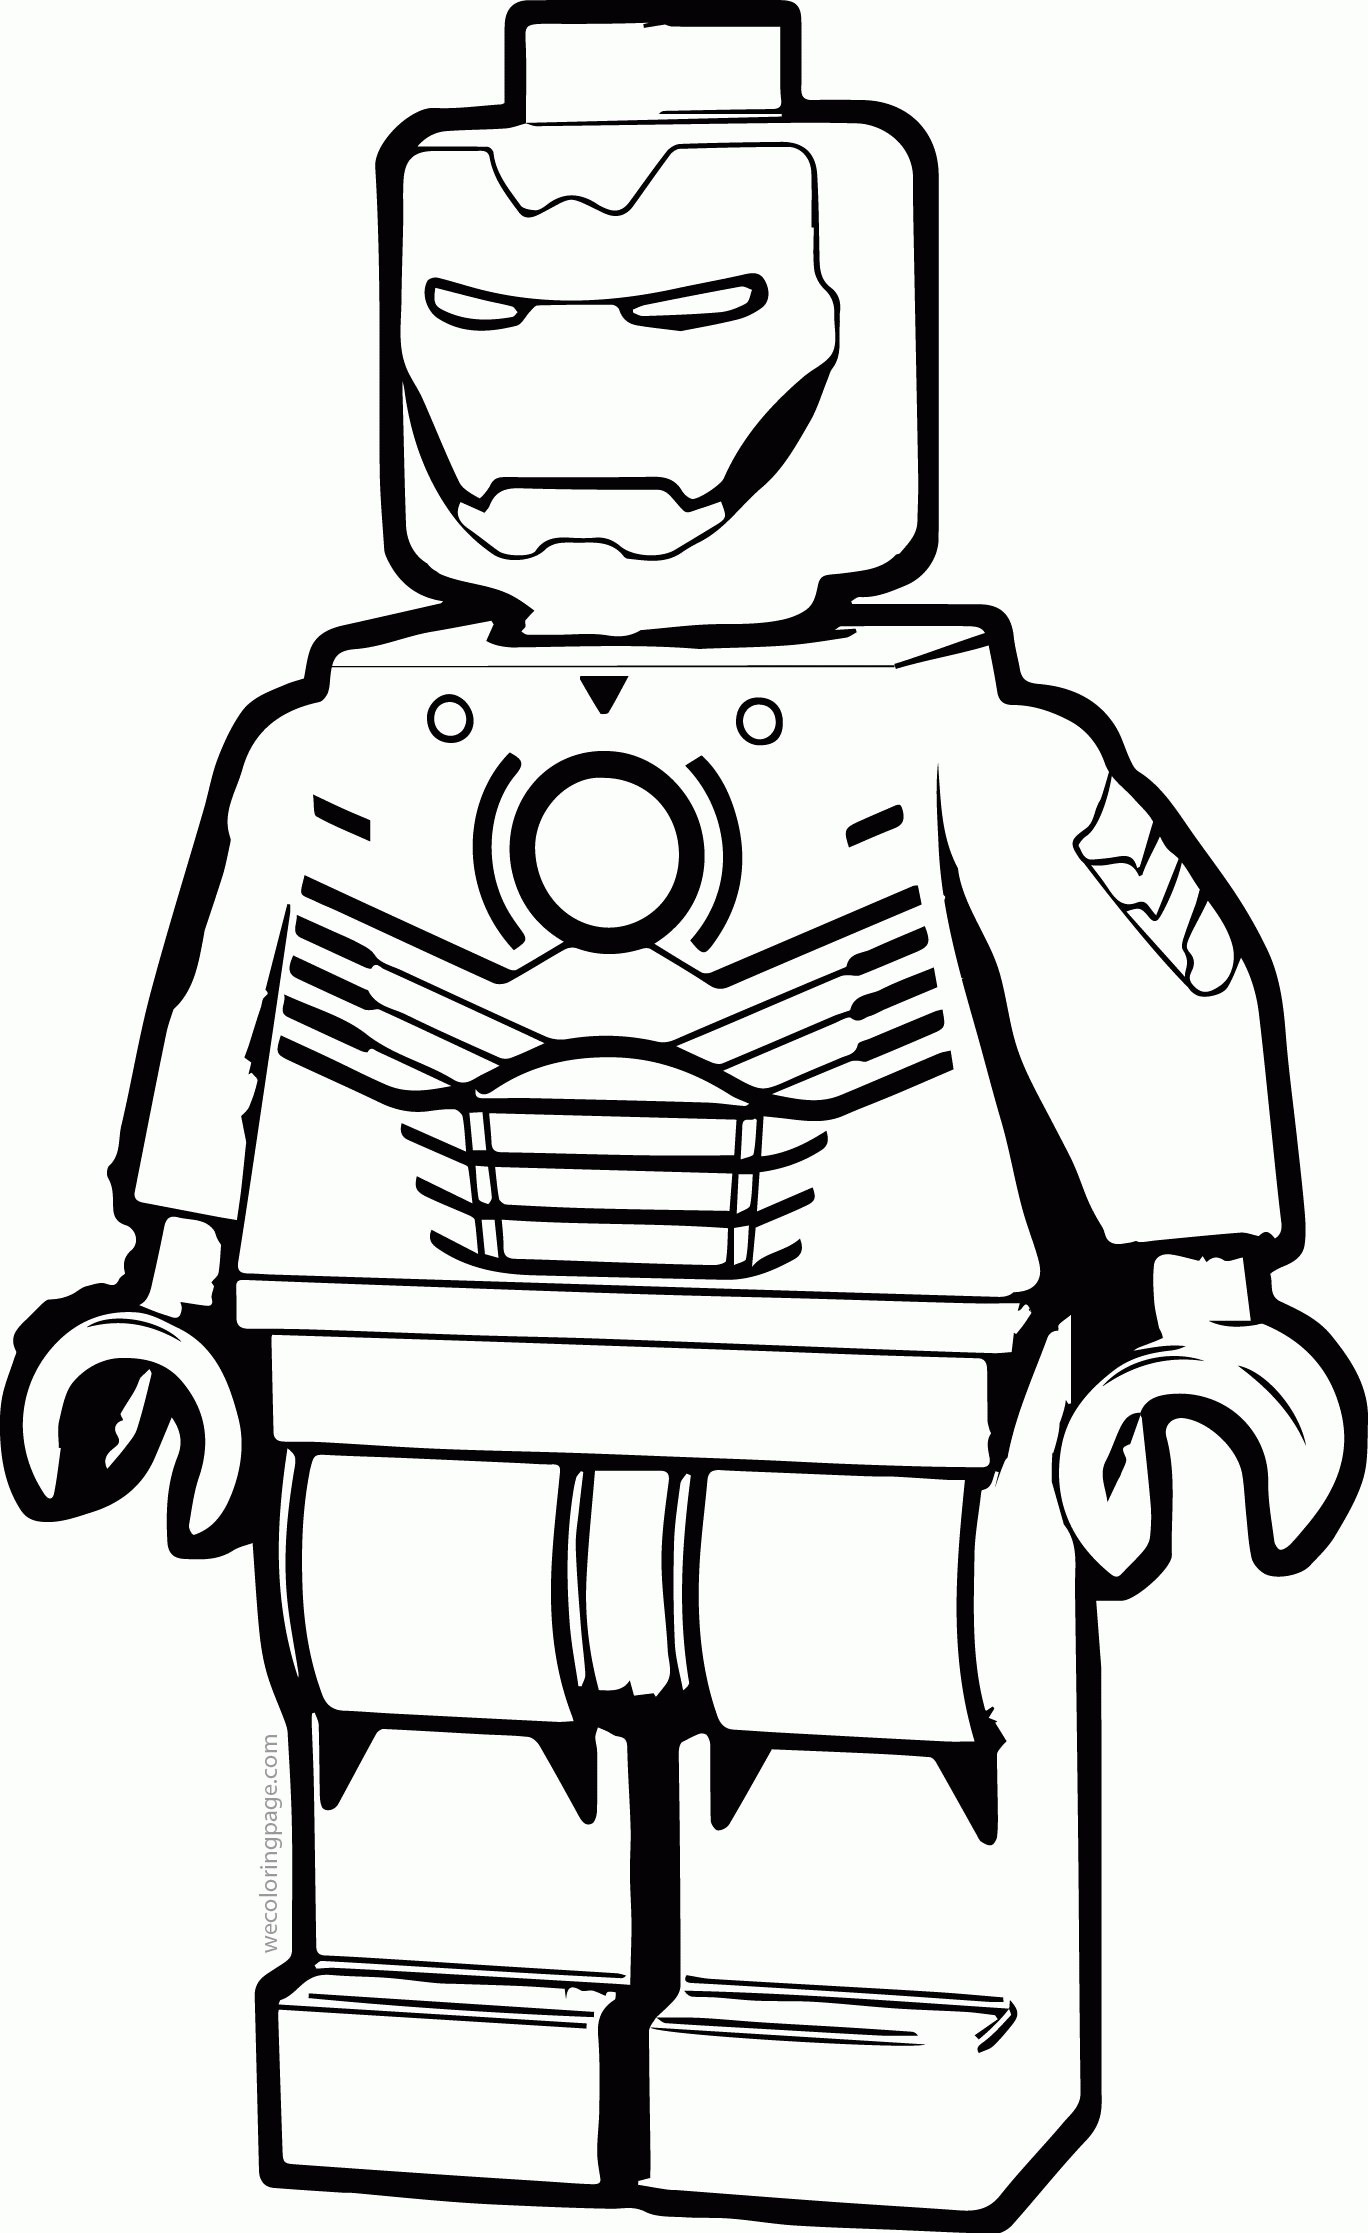 1368x2233 Avengers Superhero Coloring Pages Free Printable Iron Man Gallery